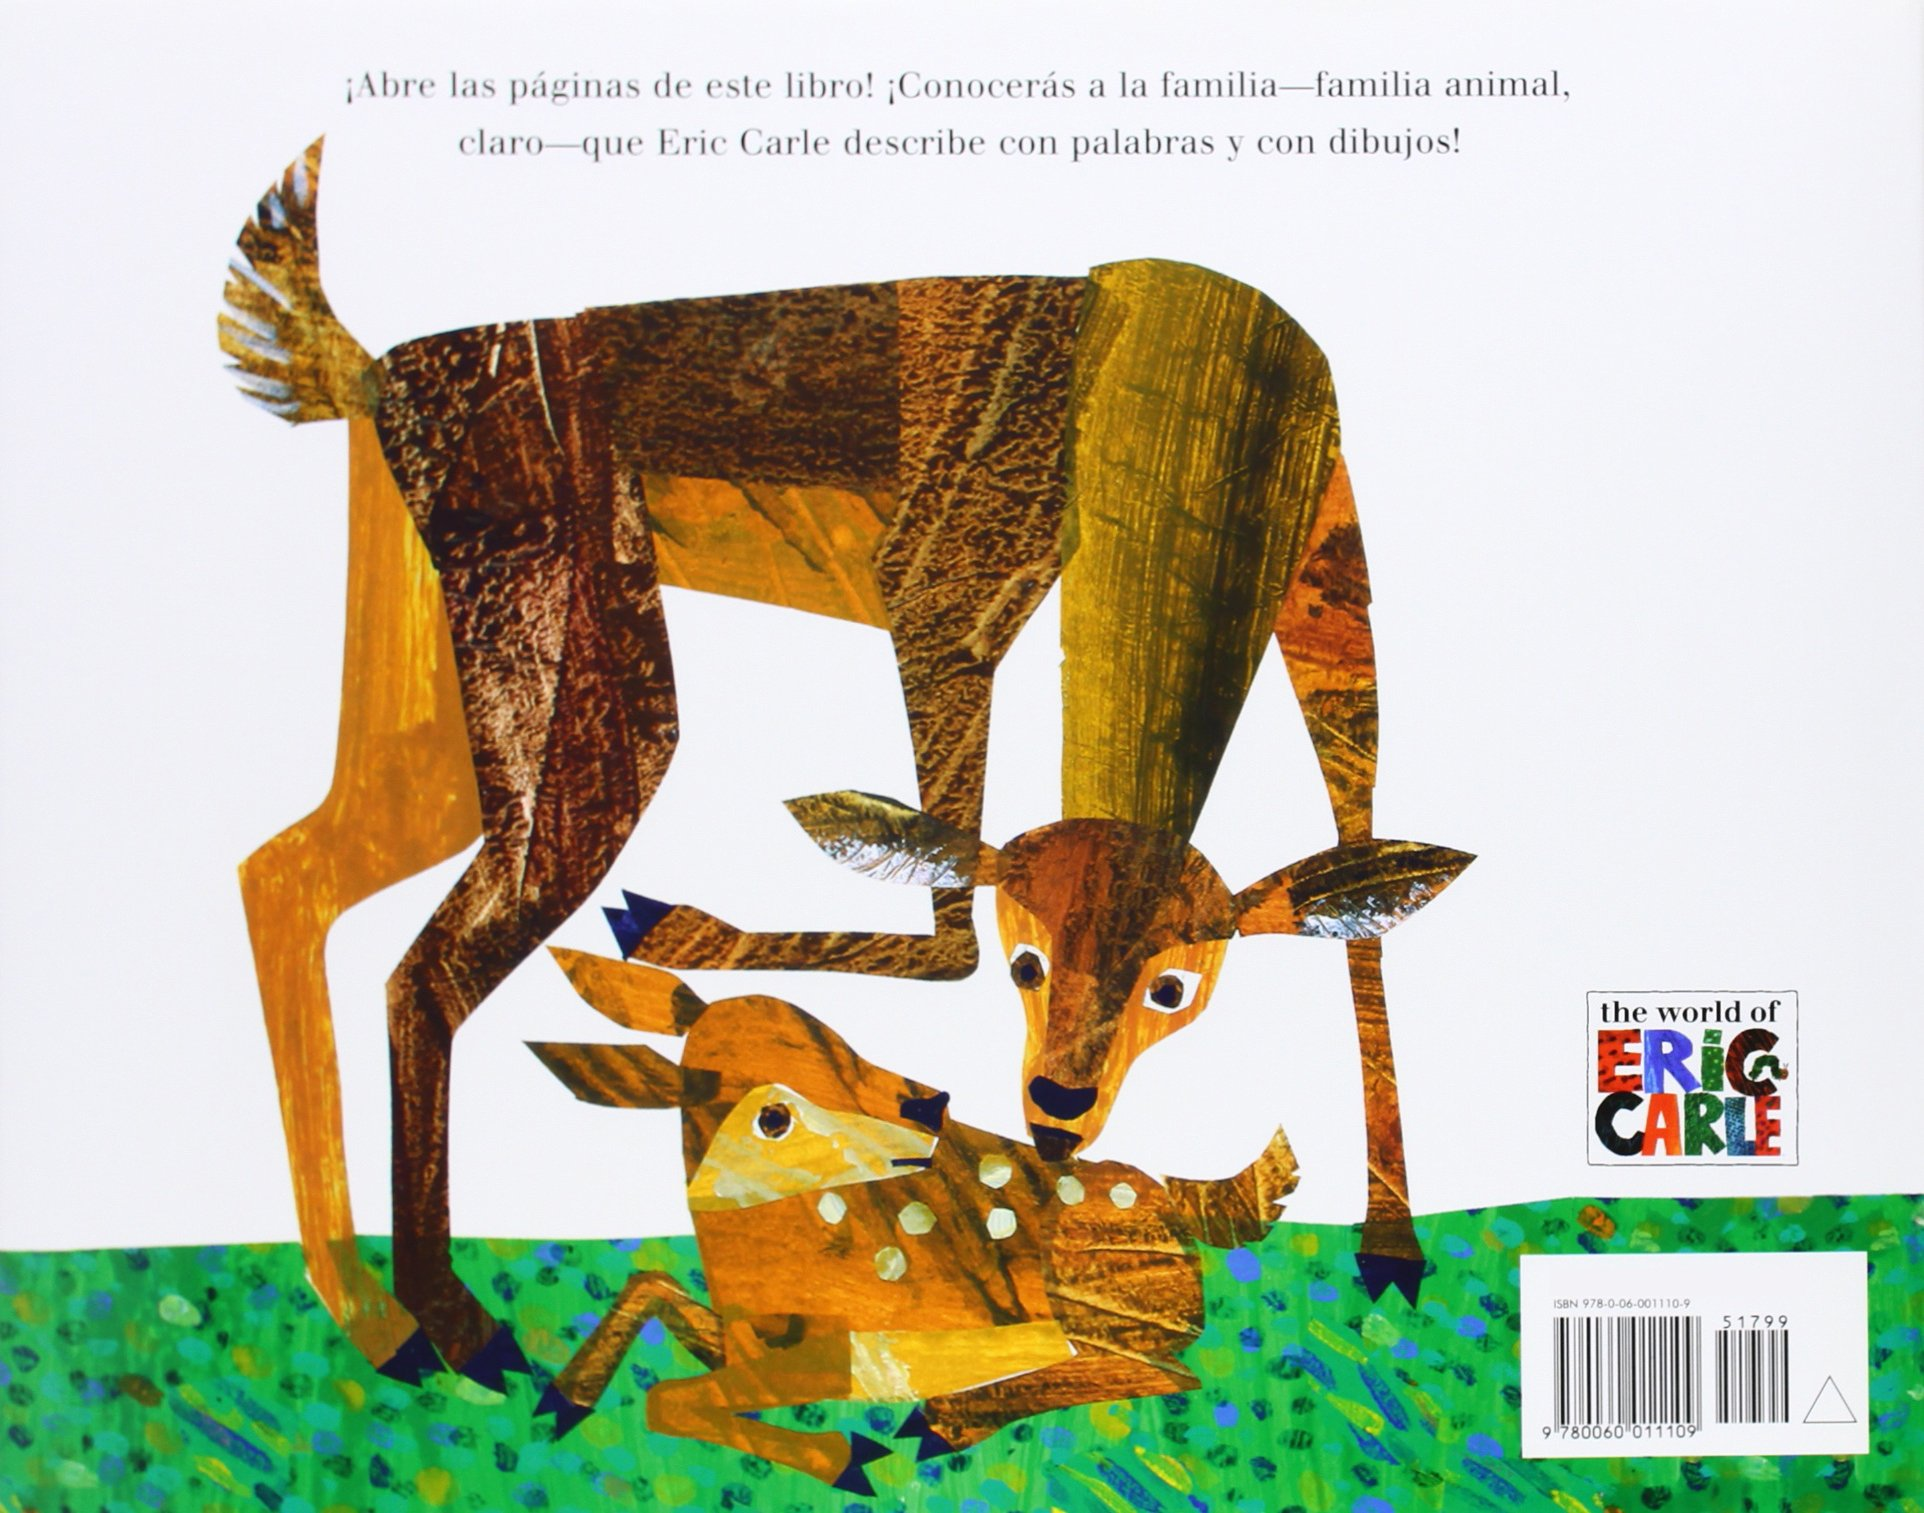 ¿El Canguro Tiene Mamá? (Does a Kangaroo Have a Mother Too?, Spanish Language Edition) by Rayo